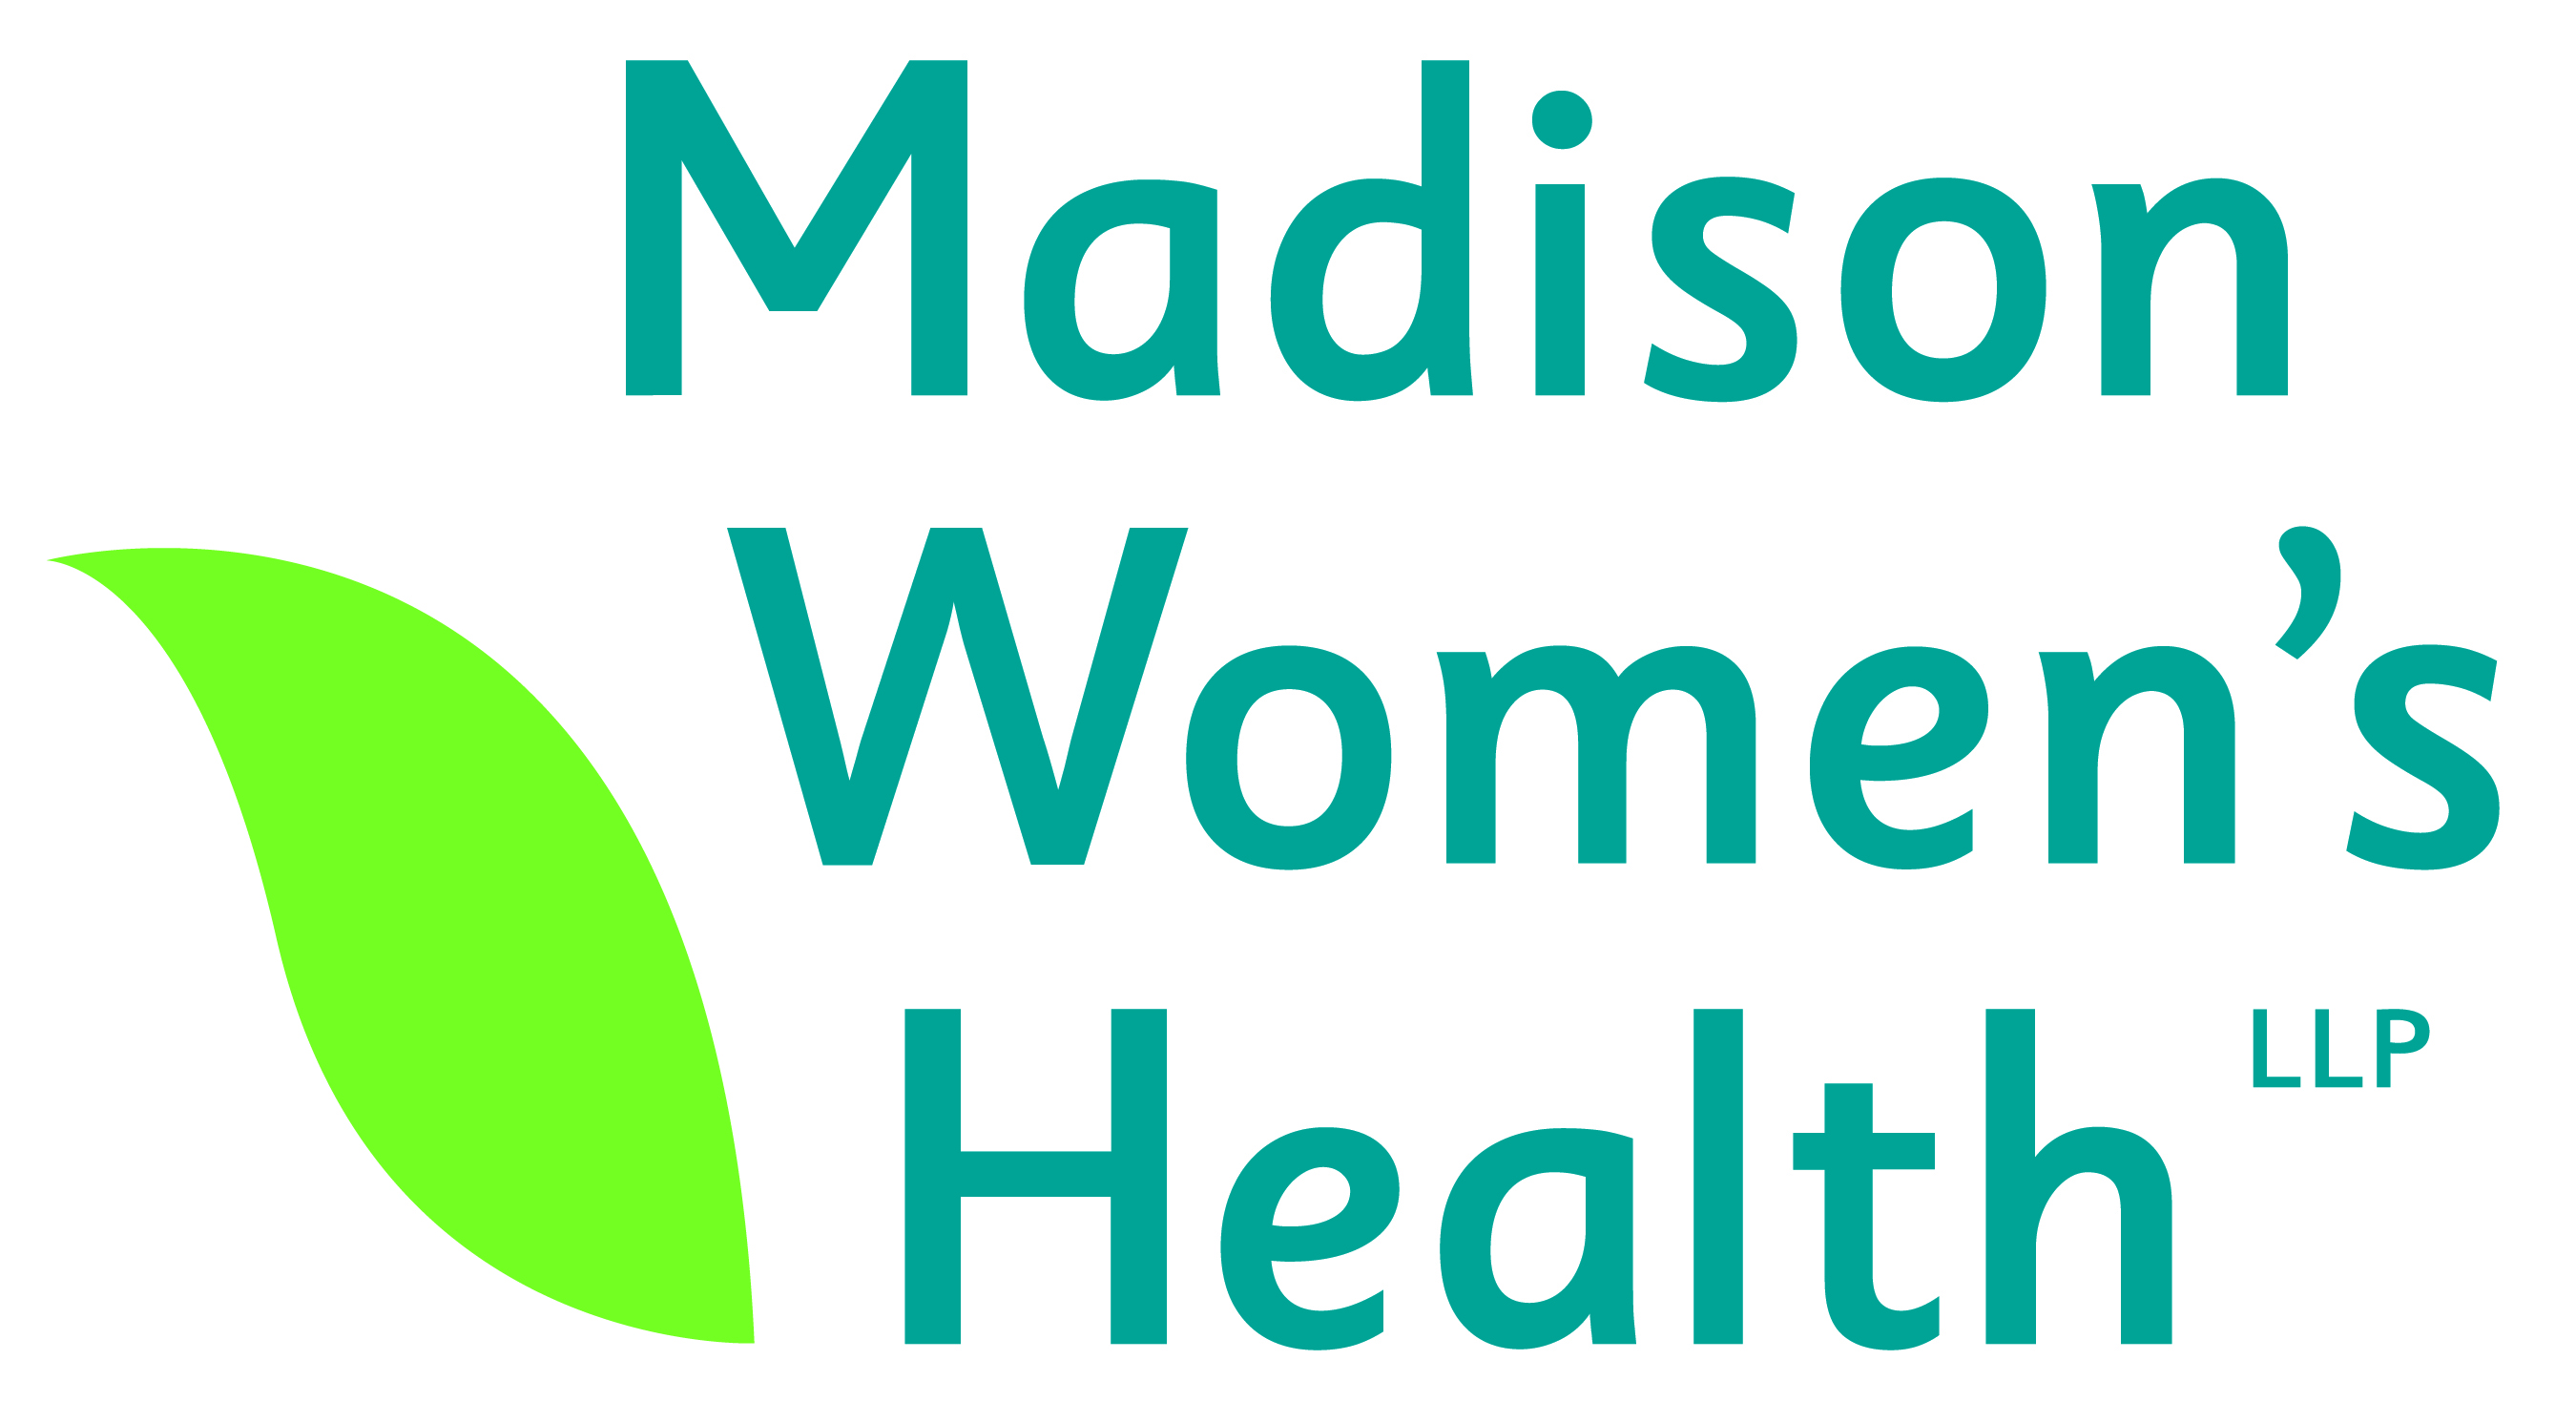 Madison Women's Health